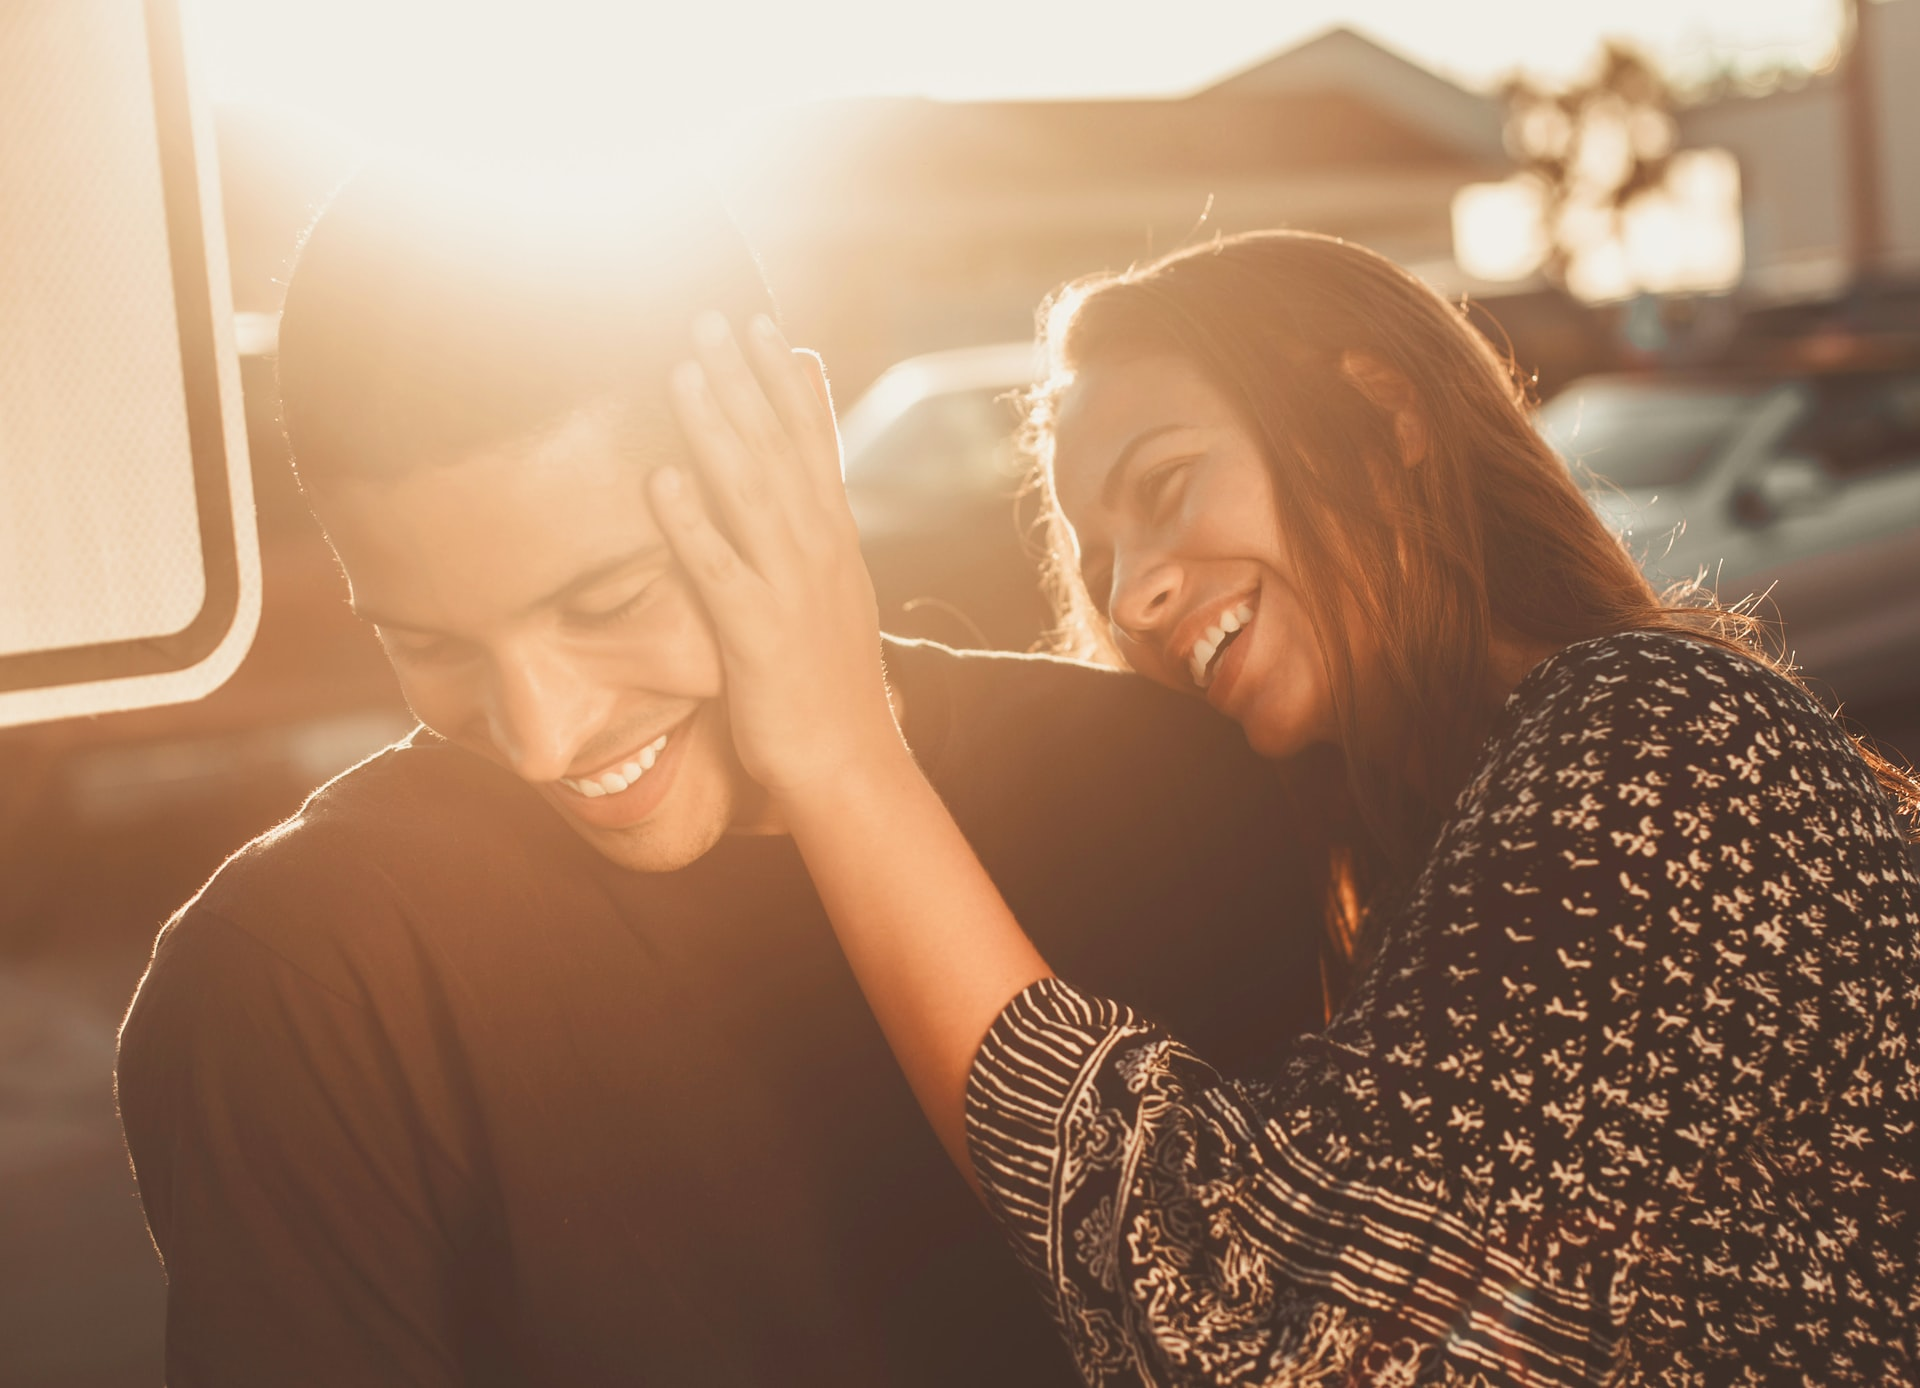 Attachment Styles and How They Impact Our Romantic Relationships